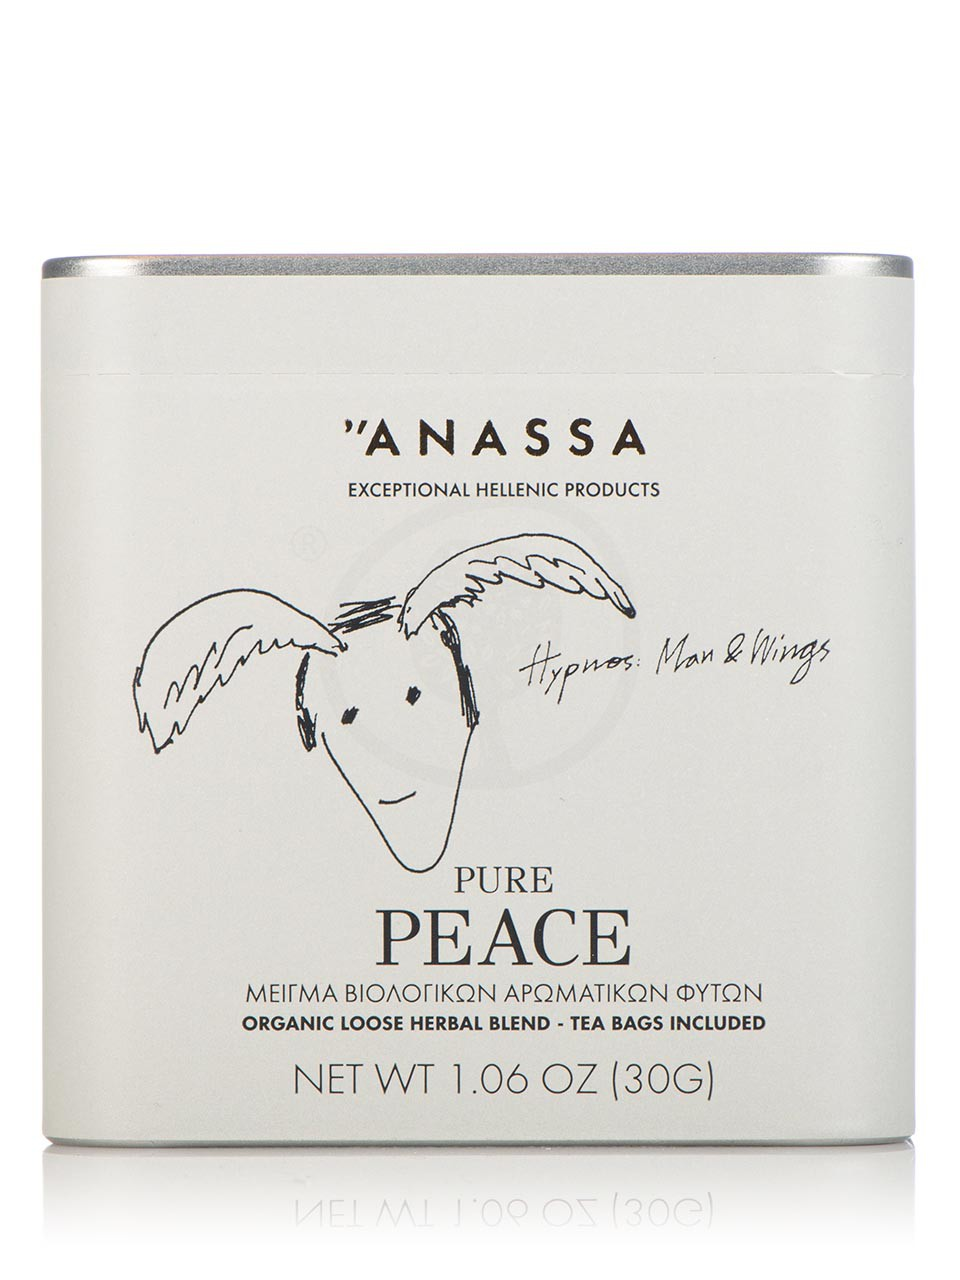 Blend of organic herbs «Pure Peace» from Attica